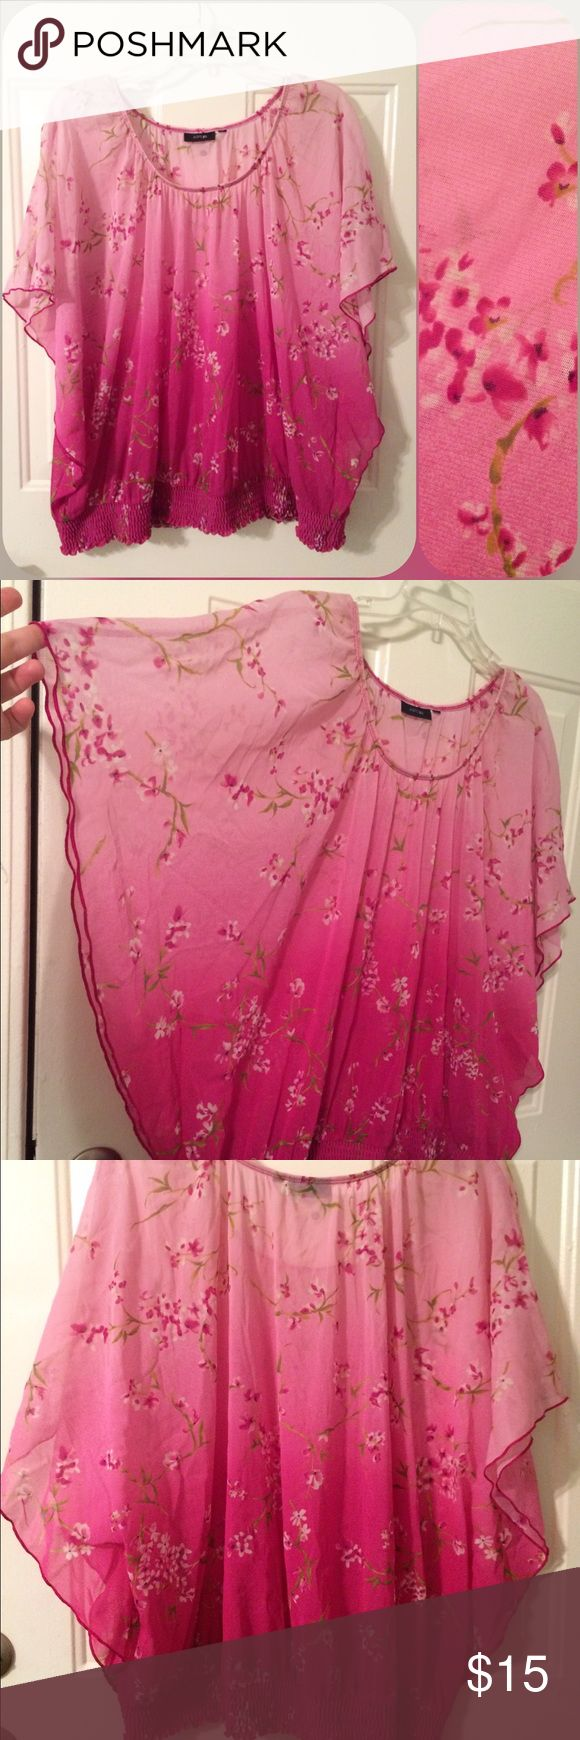 Size 3x EUC sheer pink cherry blossom blouse Apt 9 brand. Size tag has been cut out. Size 3x. Very open cut with elastic hemline. Batwing sleeves. Sheer ombré pink with cherry blossom pattern. No snags or stains. Make me an offer! I ship next day! 20% off all bundles! Apt. 9 Tops Blouses